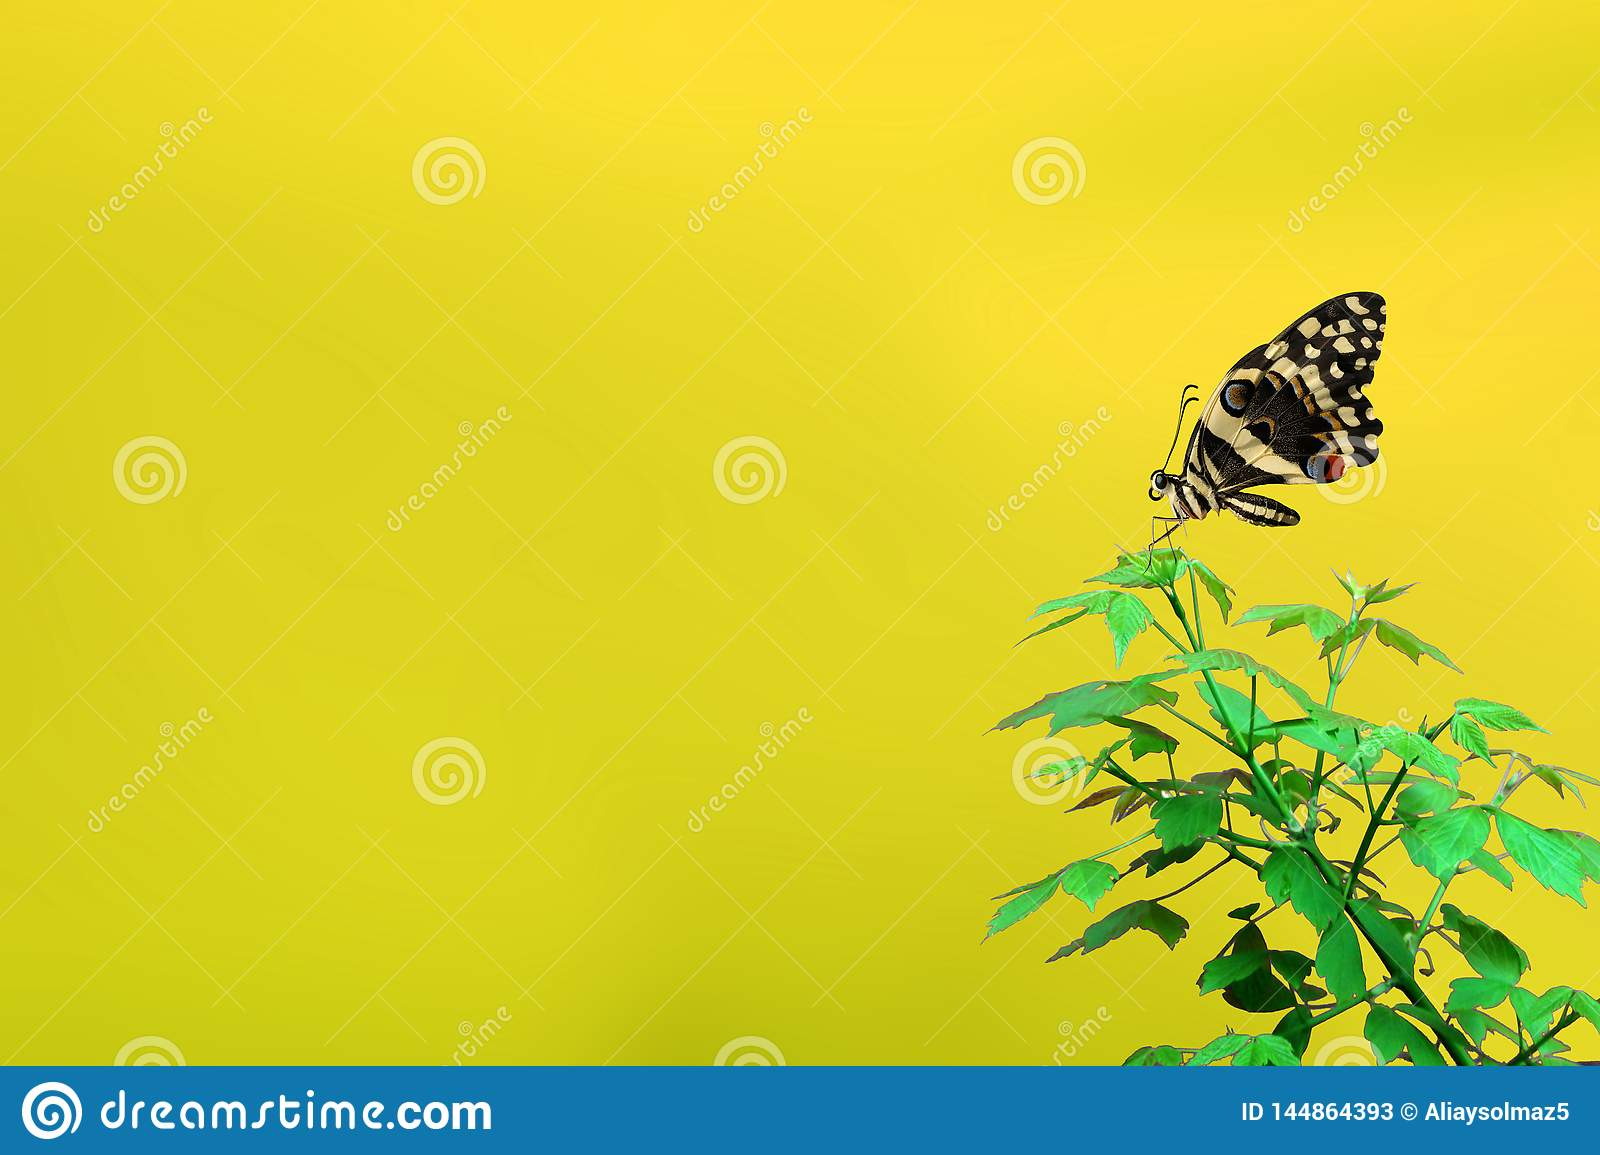 Spring Time Concept, Beautiful Butterfly and Blank Area for the Text